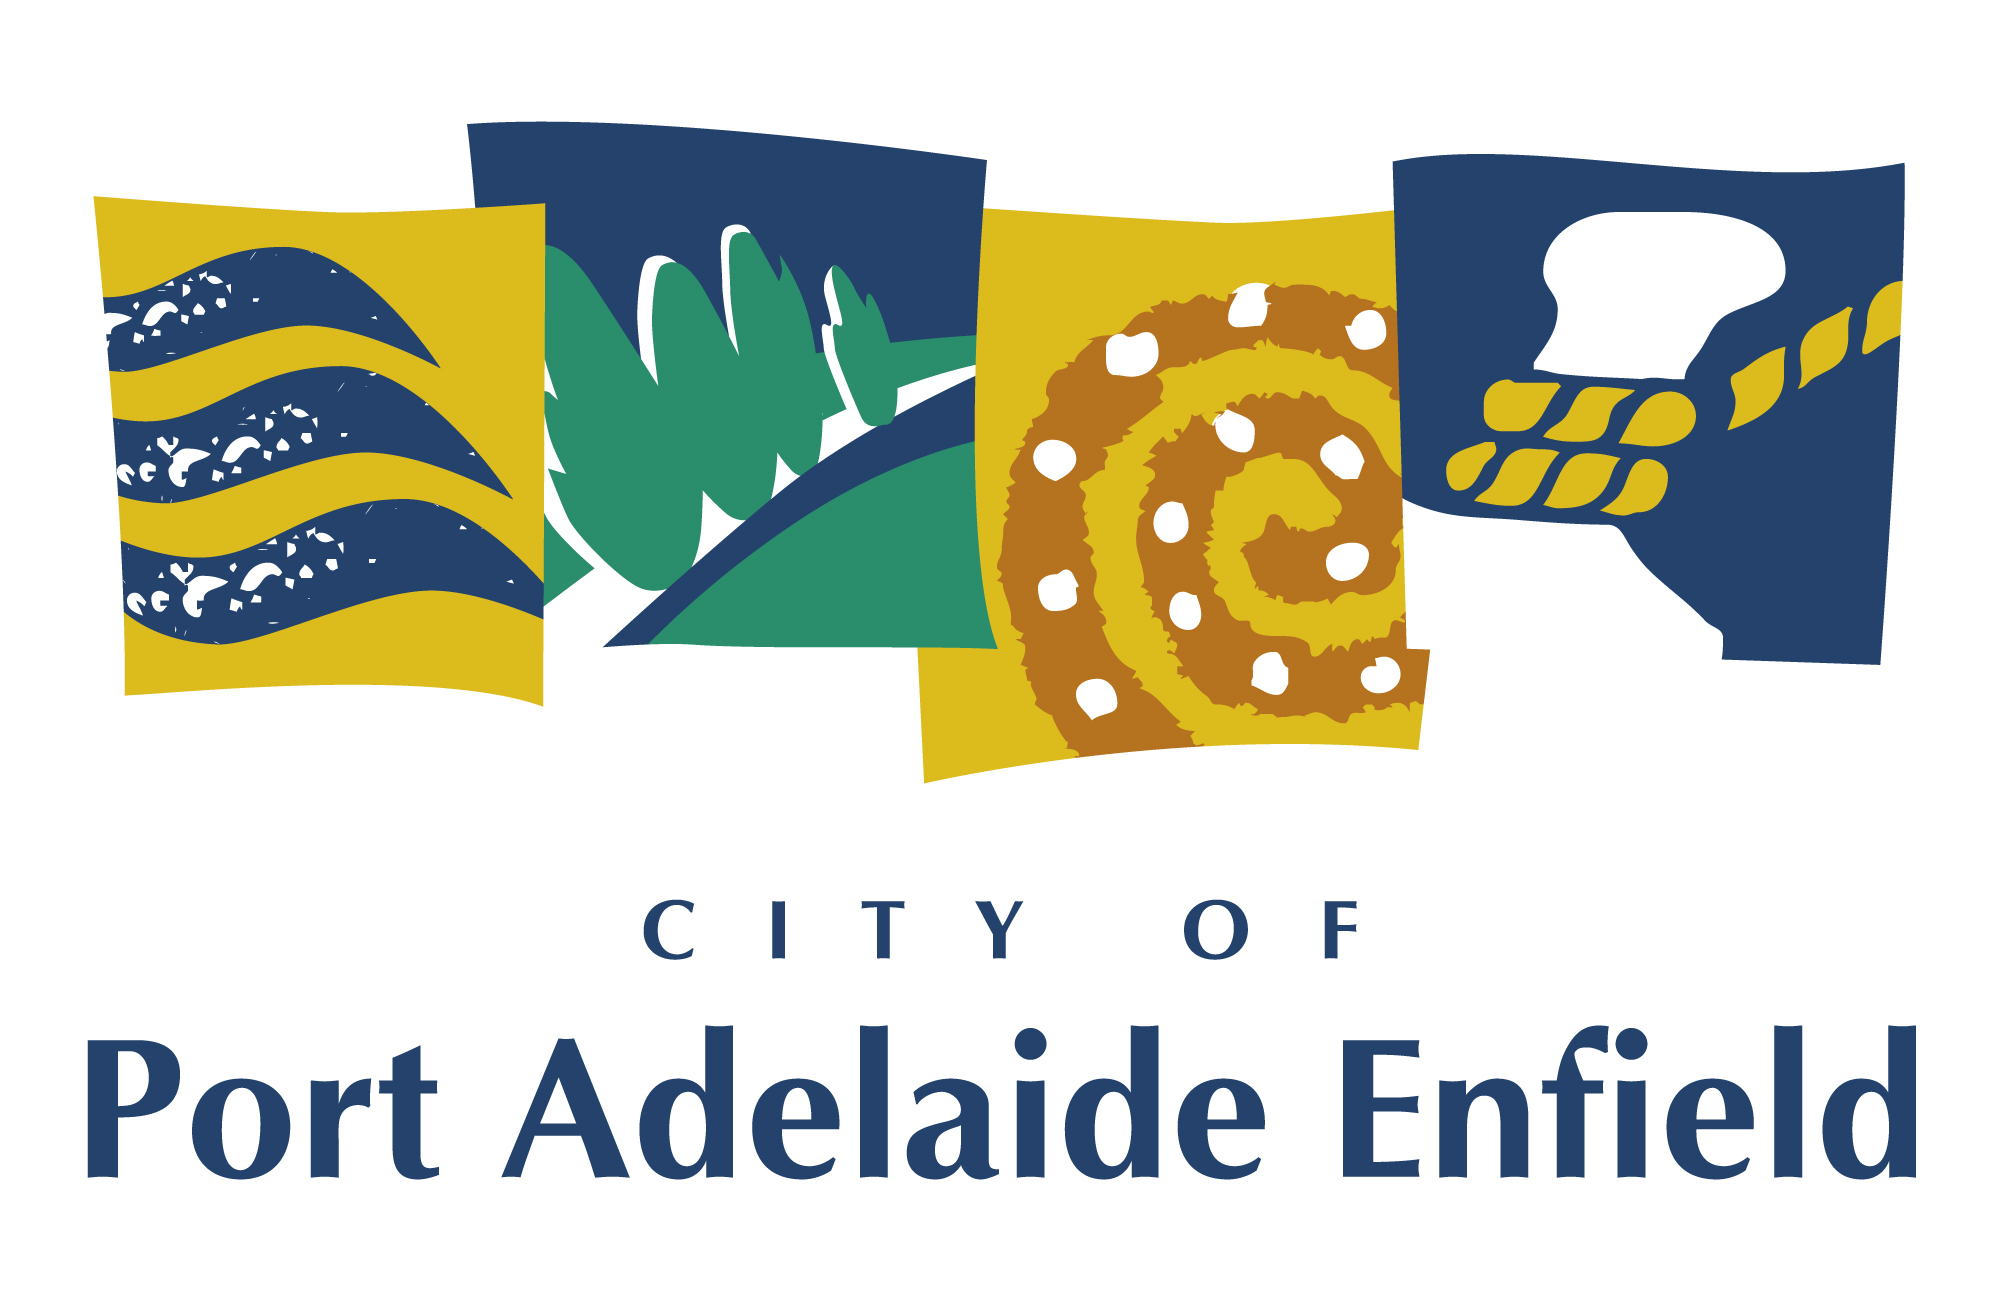 City of Port Adelaide Enfield